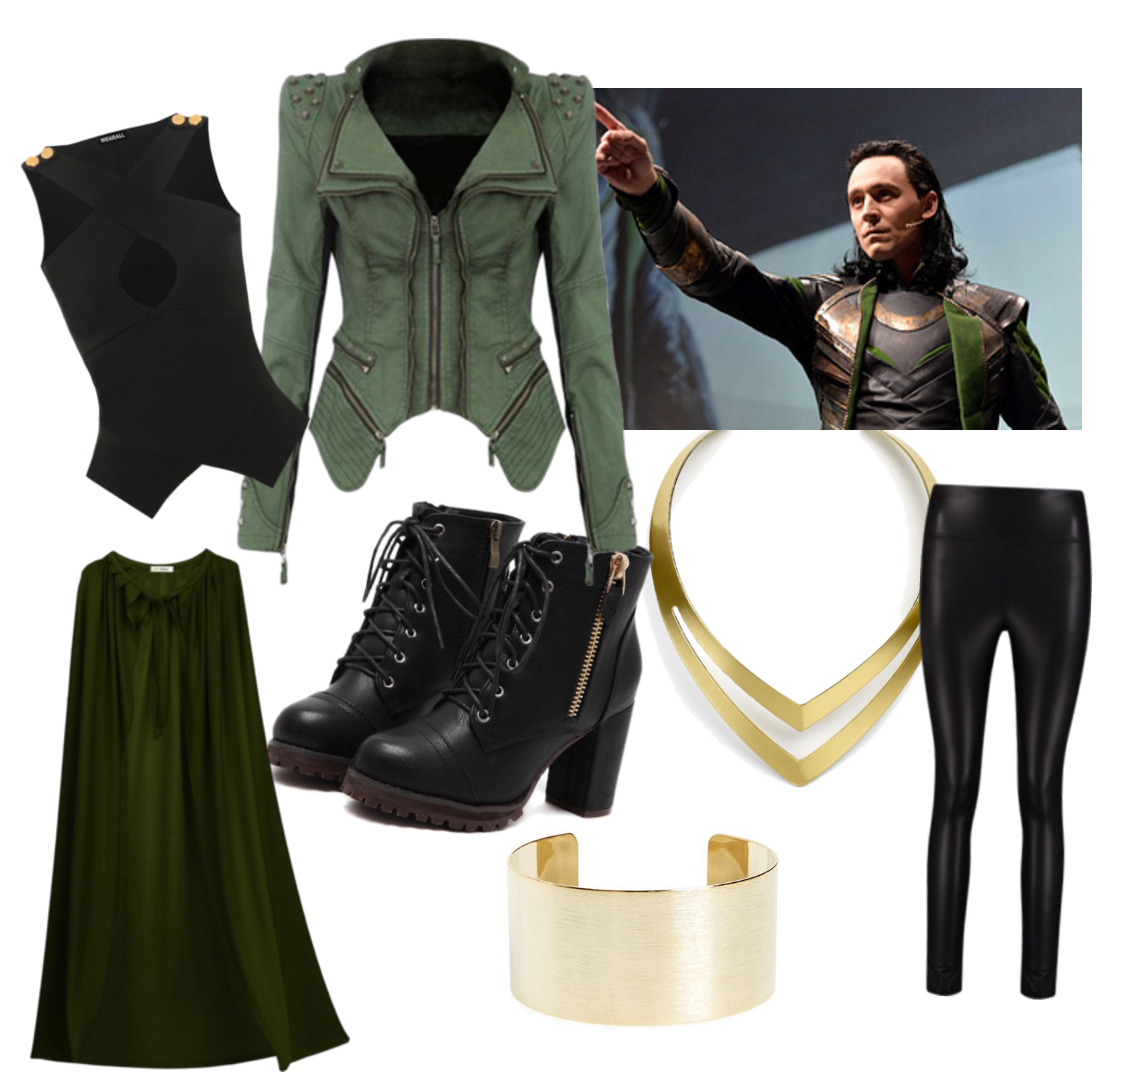 Easy Diy Marvel Halloween Costume Ideas Including Loki Black Widow More Marvel Halloween Costumes Avengers Outfits Marvel Costumes